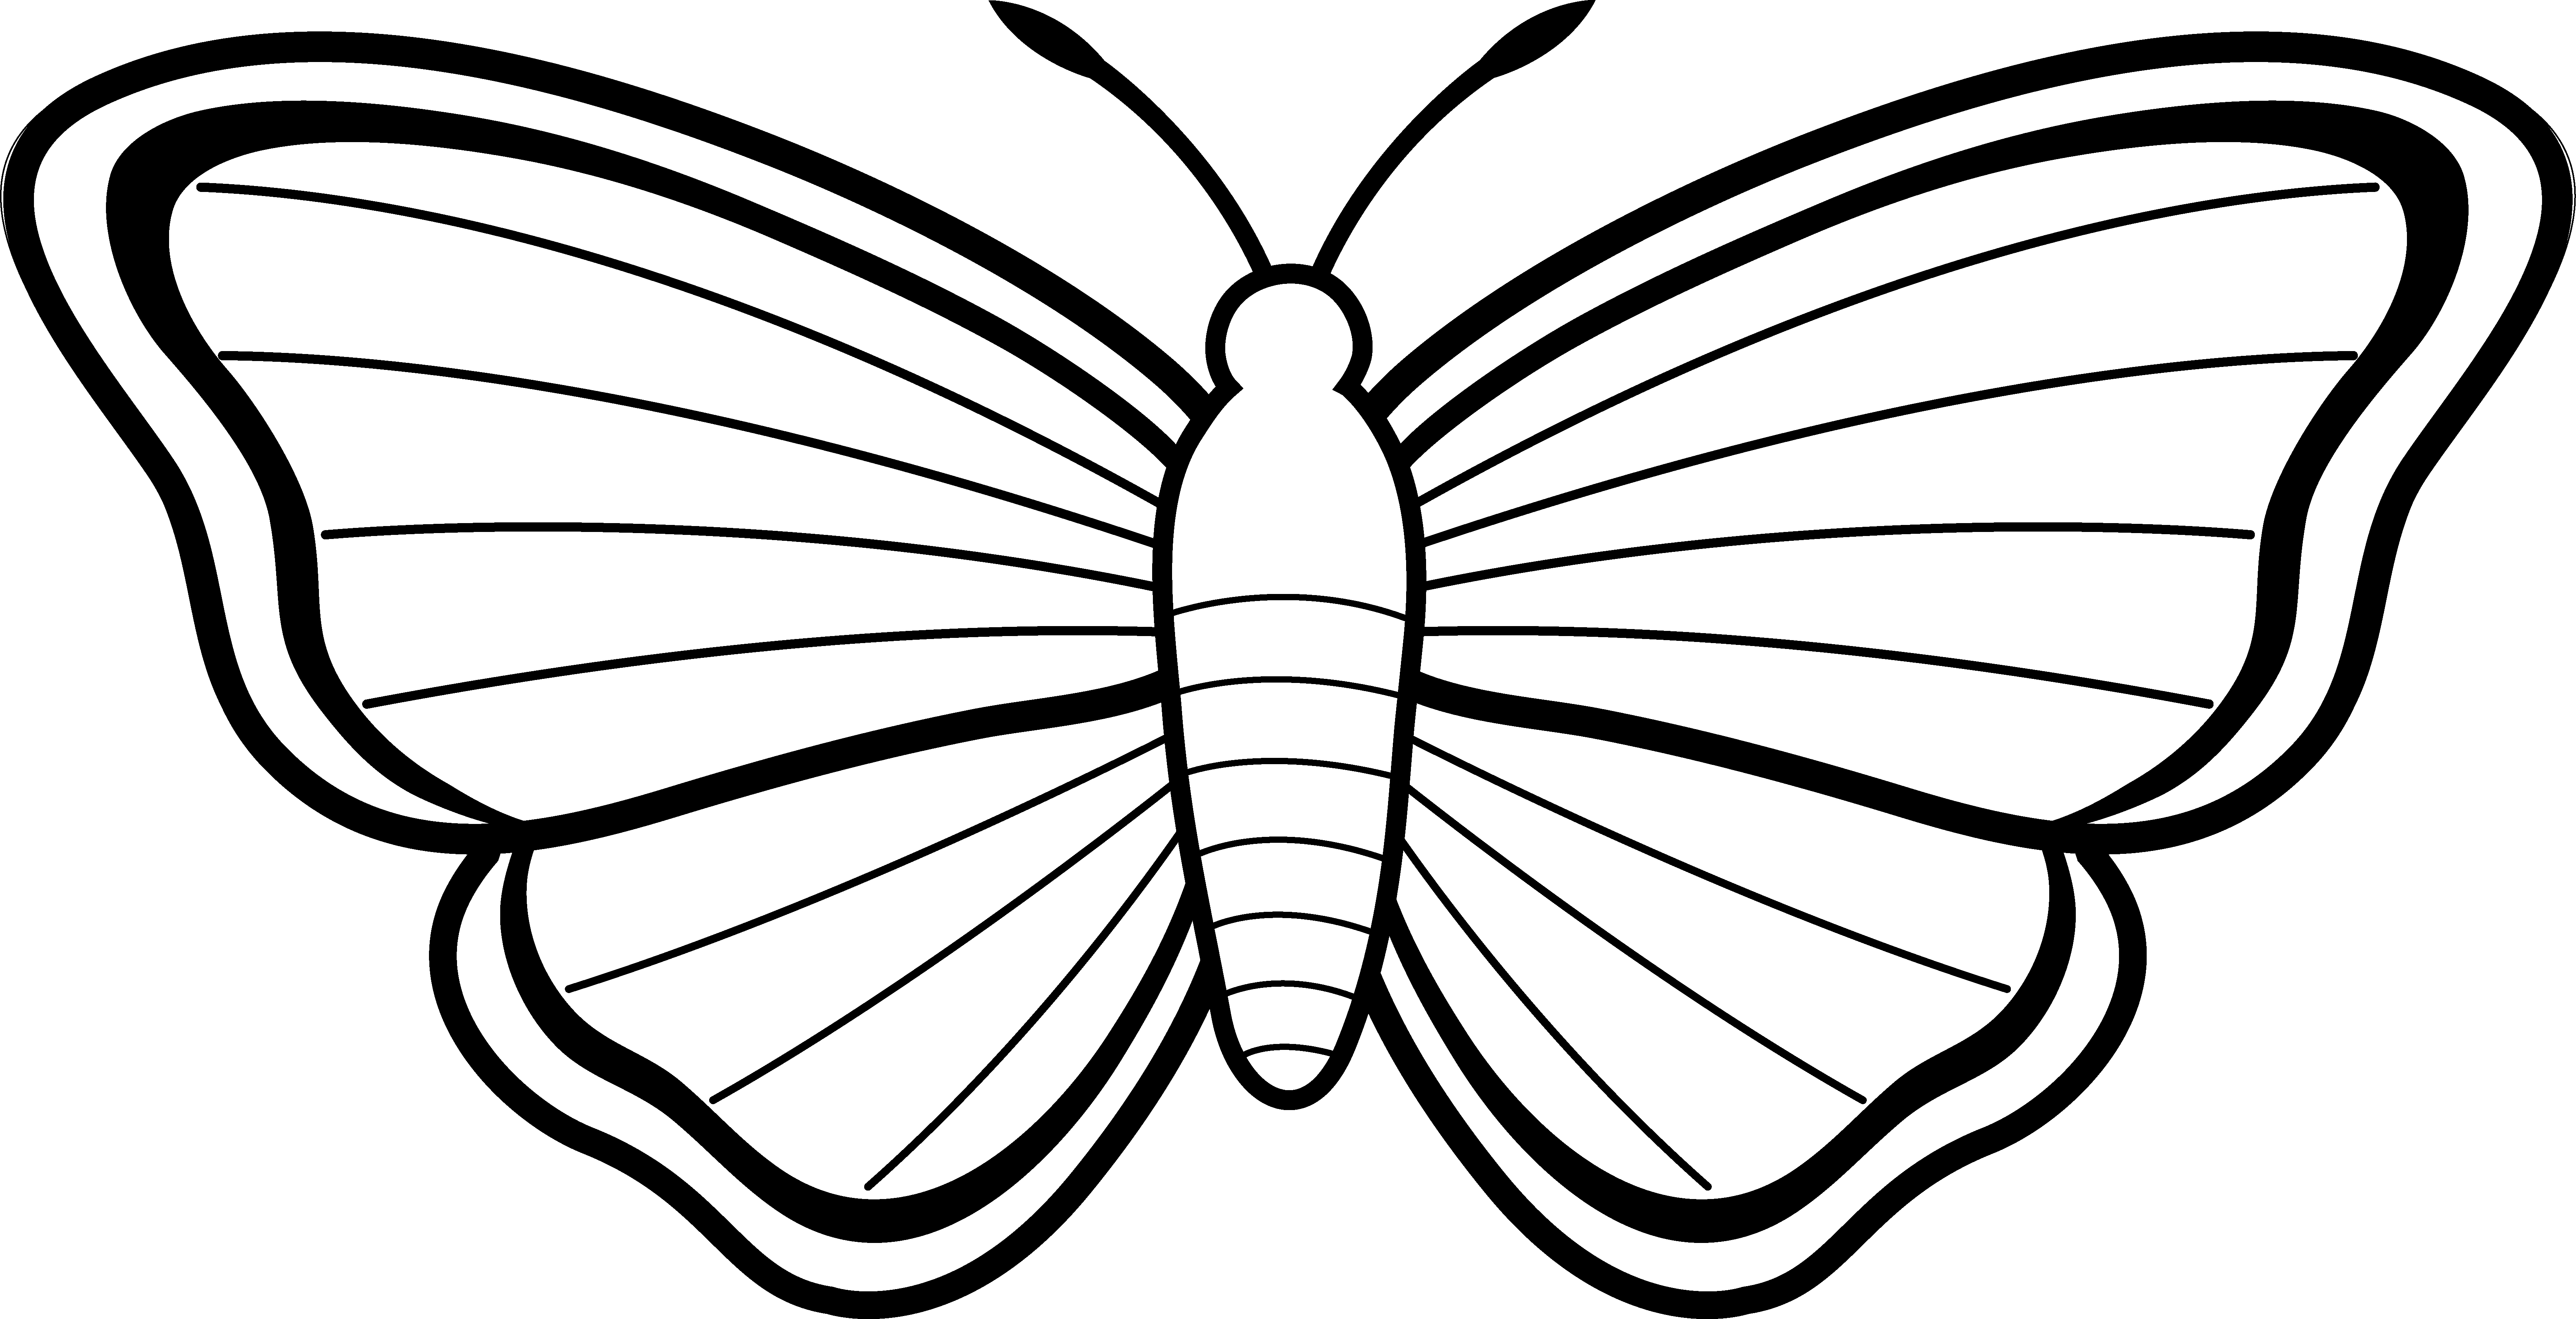 coloring outline butterfly butterfly outline free download on clipartmag outline butterfly coloring